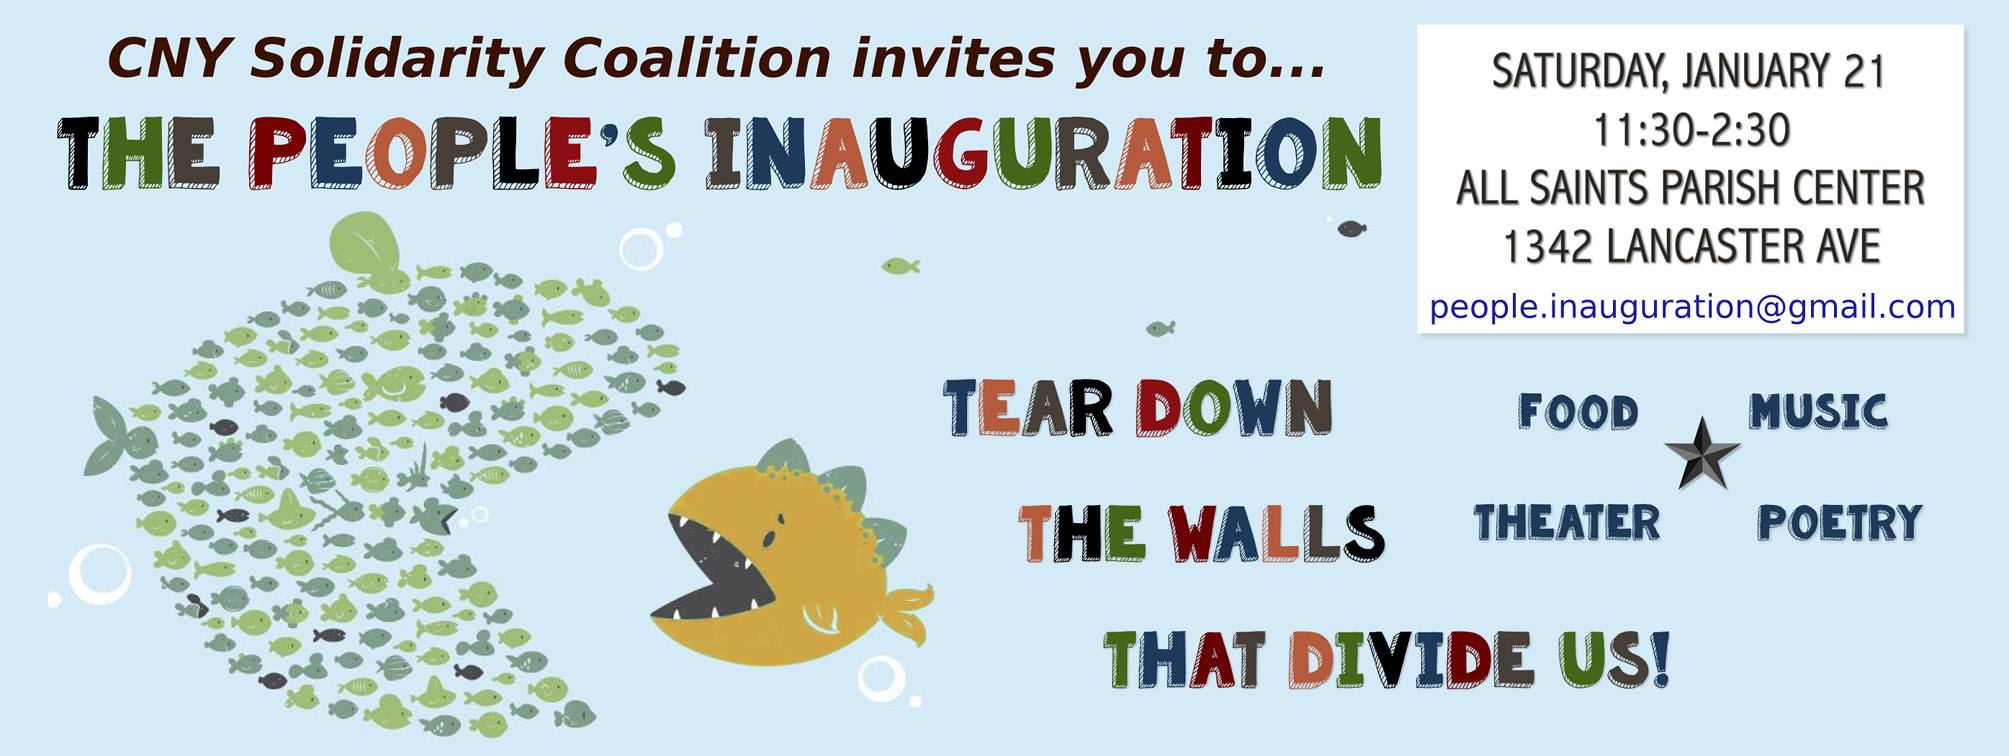 People's Inauguration, Sat. Jan. 21st 11:30am-2:30pm